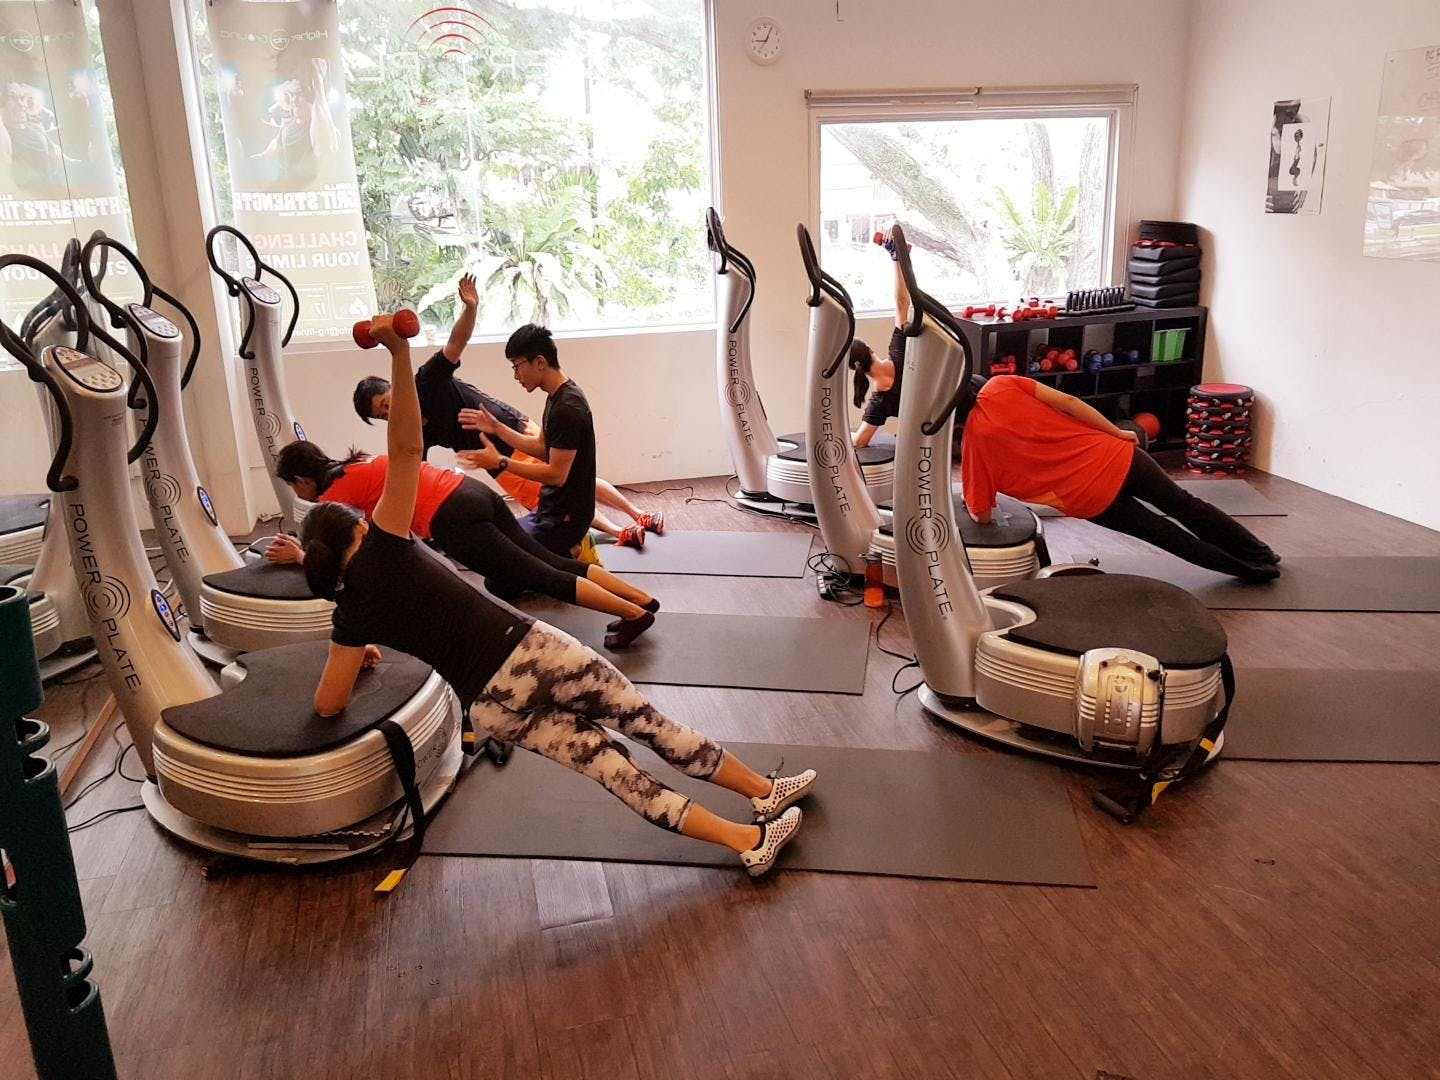 Vibration Training - New Dimension for Your Fitness